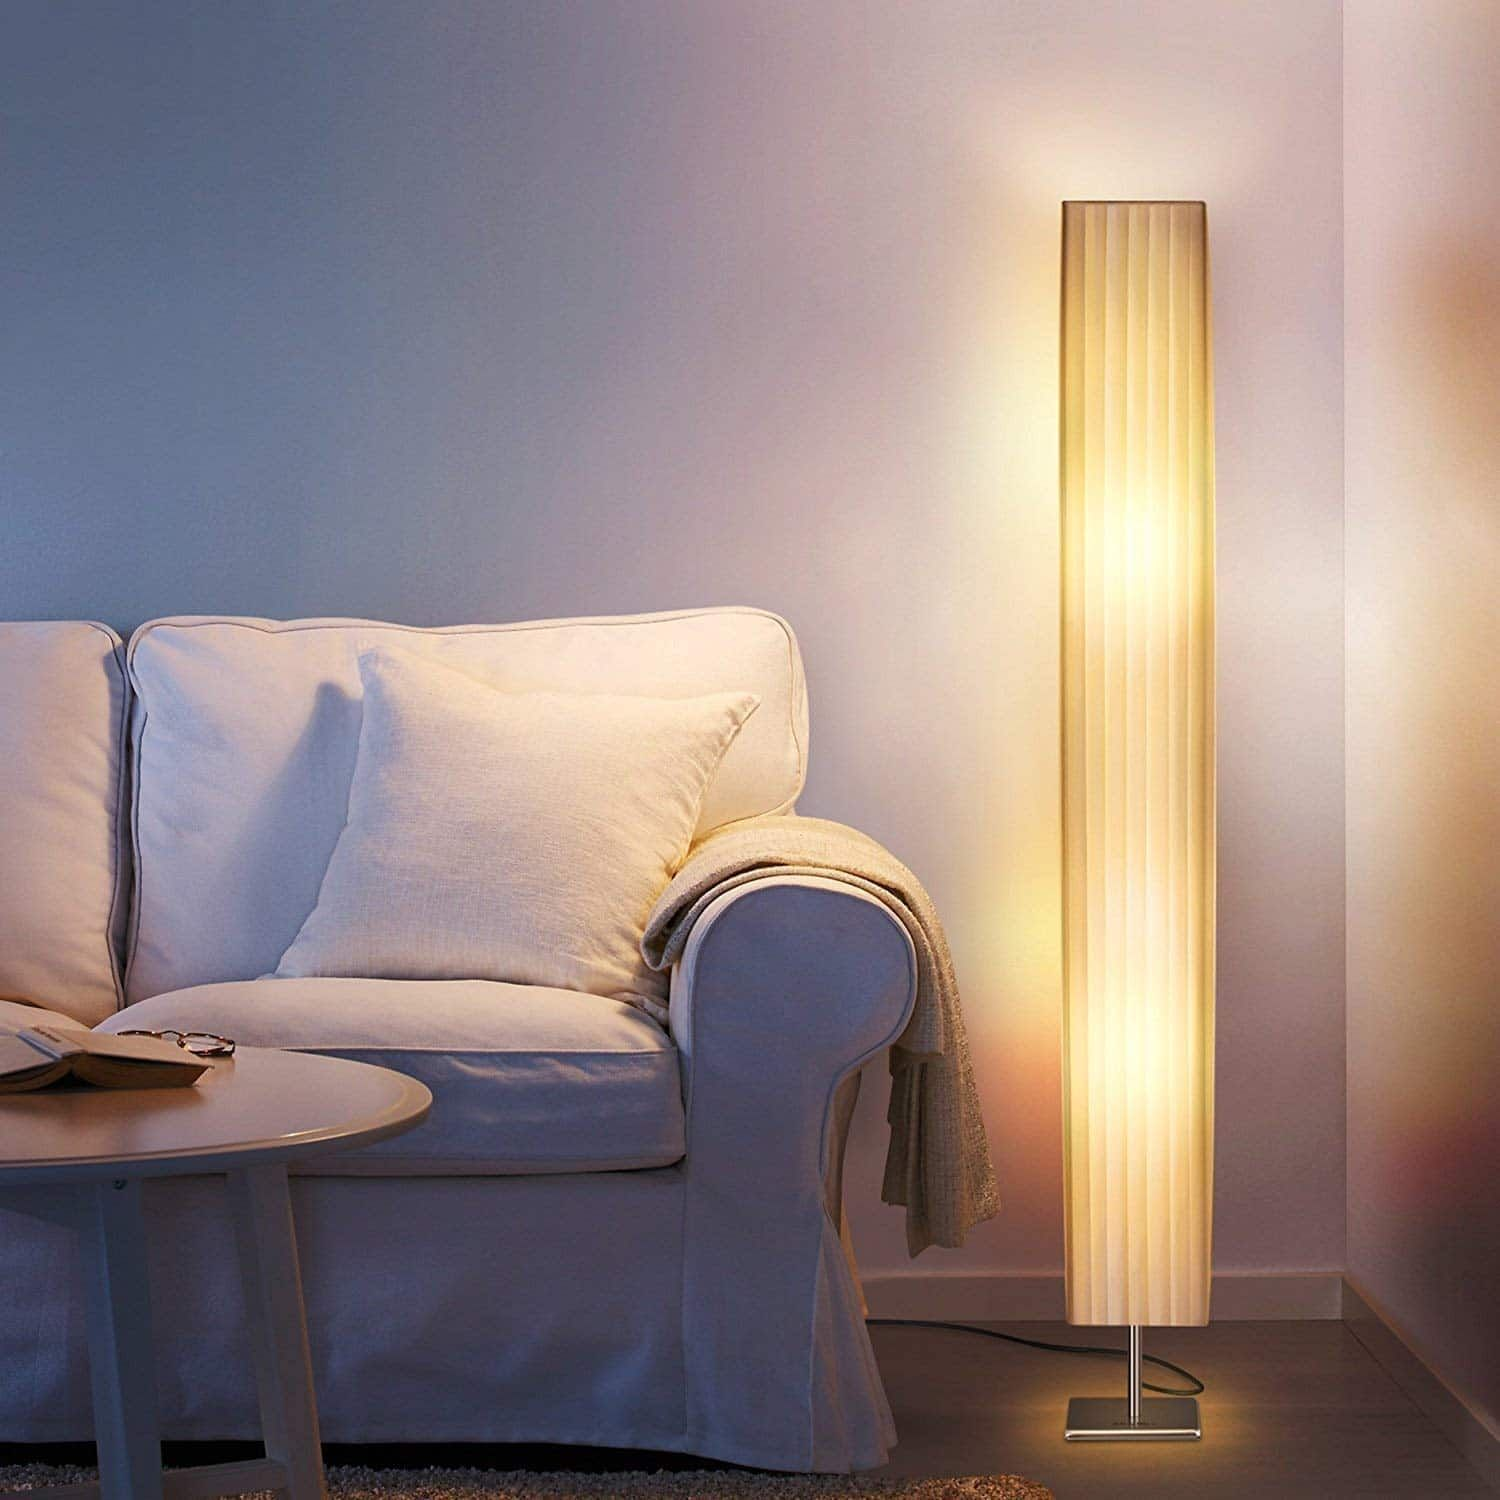 43+ Tall floor lamps for bedroom ppdb 2021